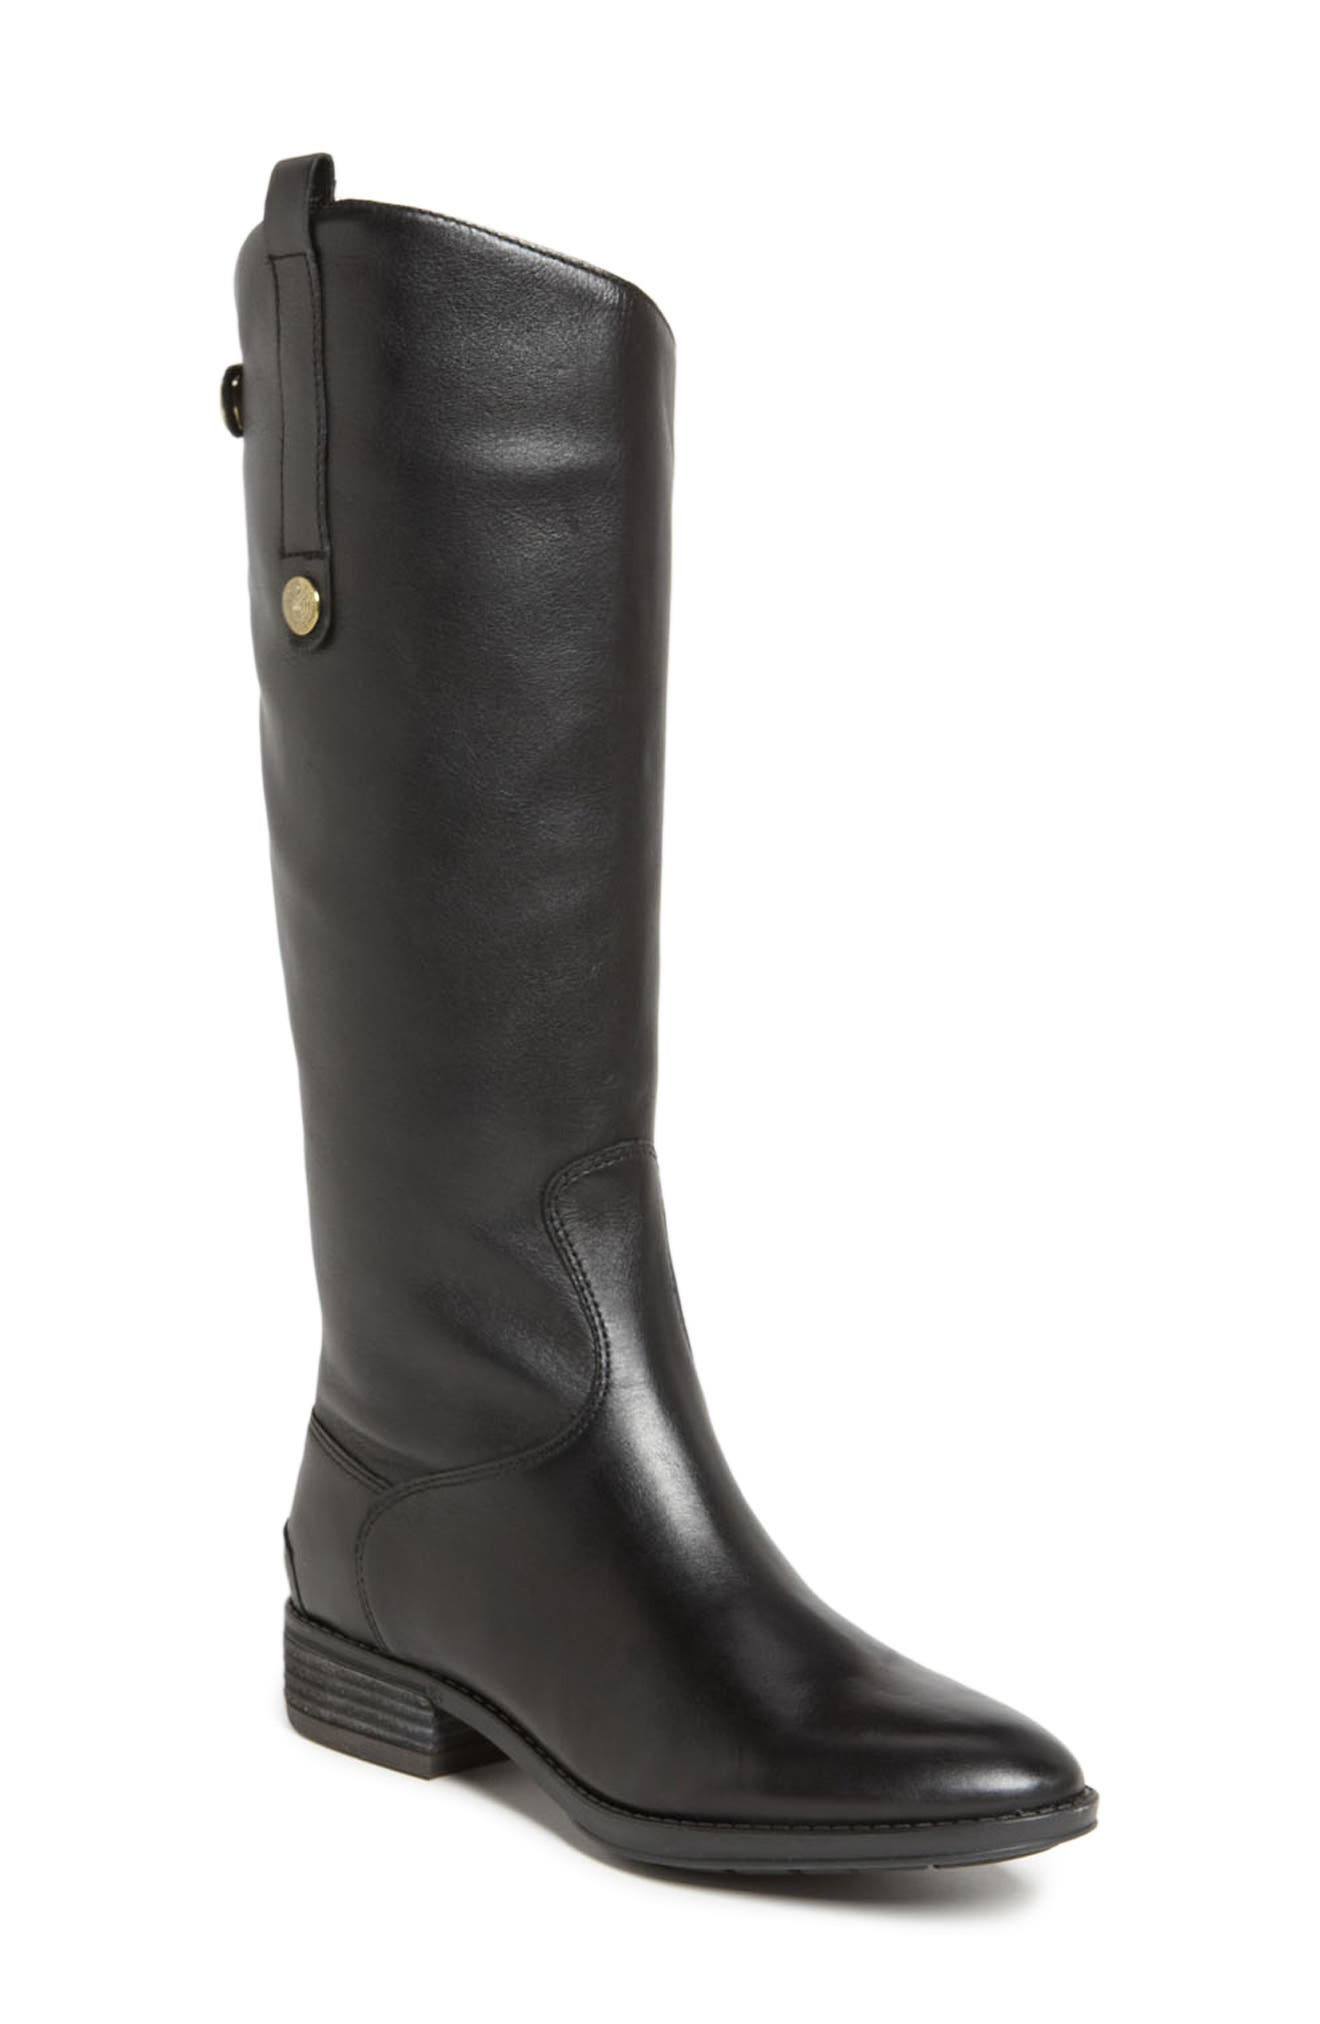 Flat Wide-Calf Boots for Women   Nordstrom